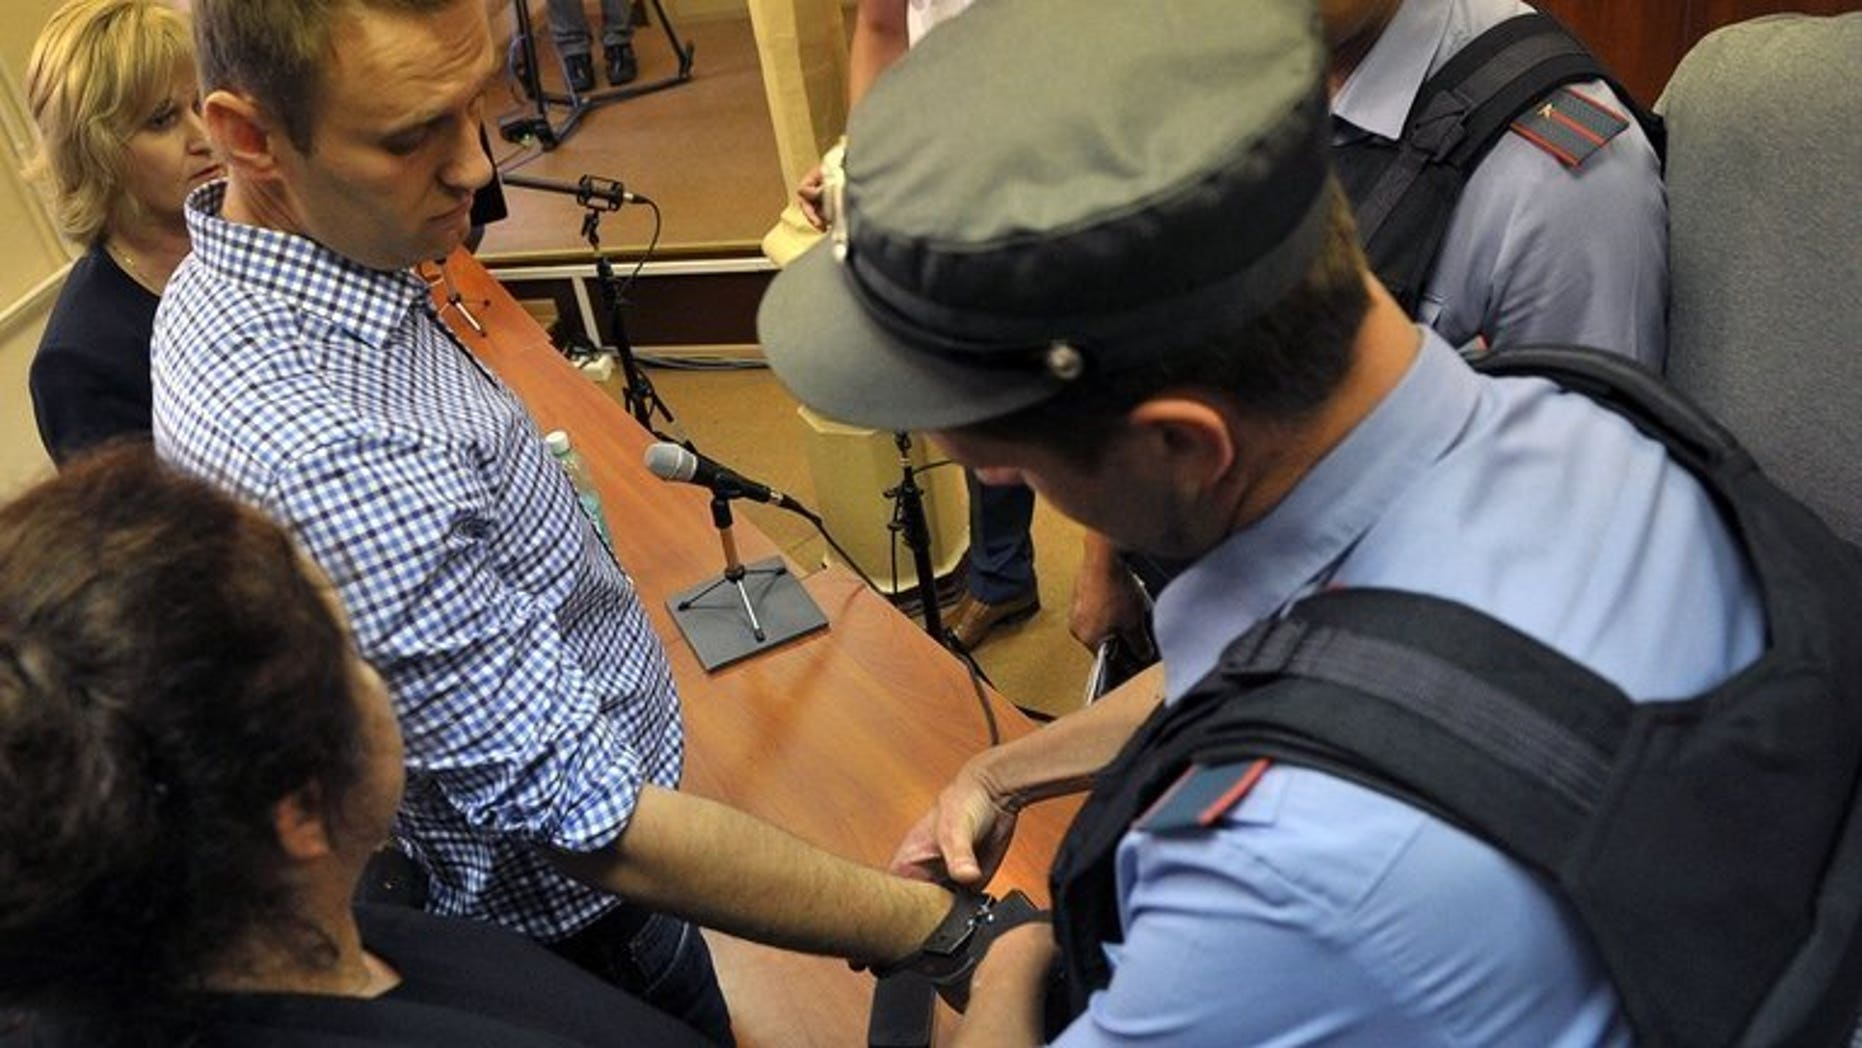 A police officer handcuffs Russian opposition leader Alexei Navalny (L) in the courtroom in Kirov, northern Russia on July 18, 2013. Navalny is pulling out of the Moscow mayoral race and is calling on his supporters to boycott the vote, his election chief said Thursday.